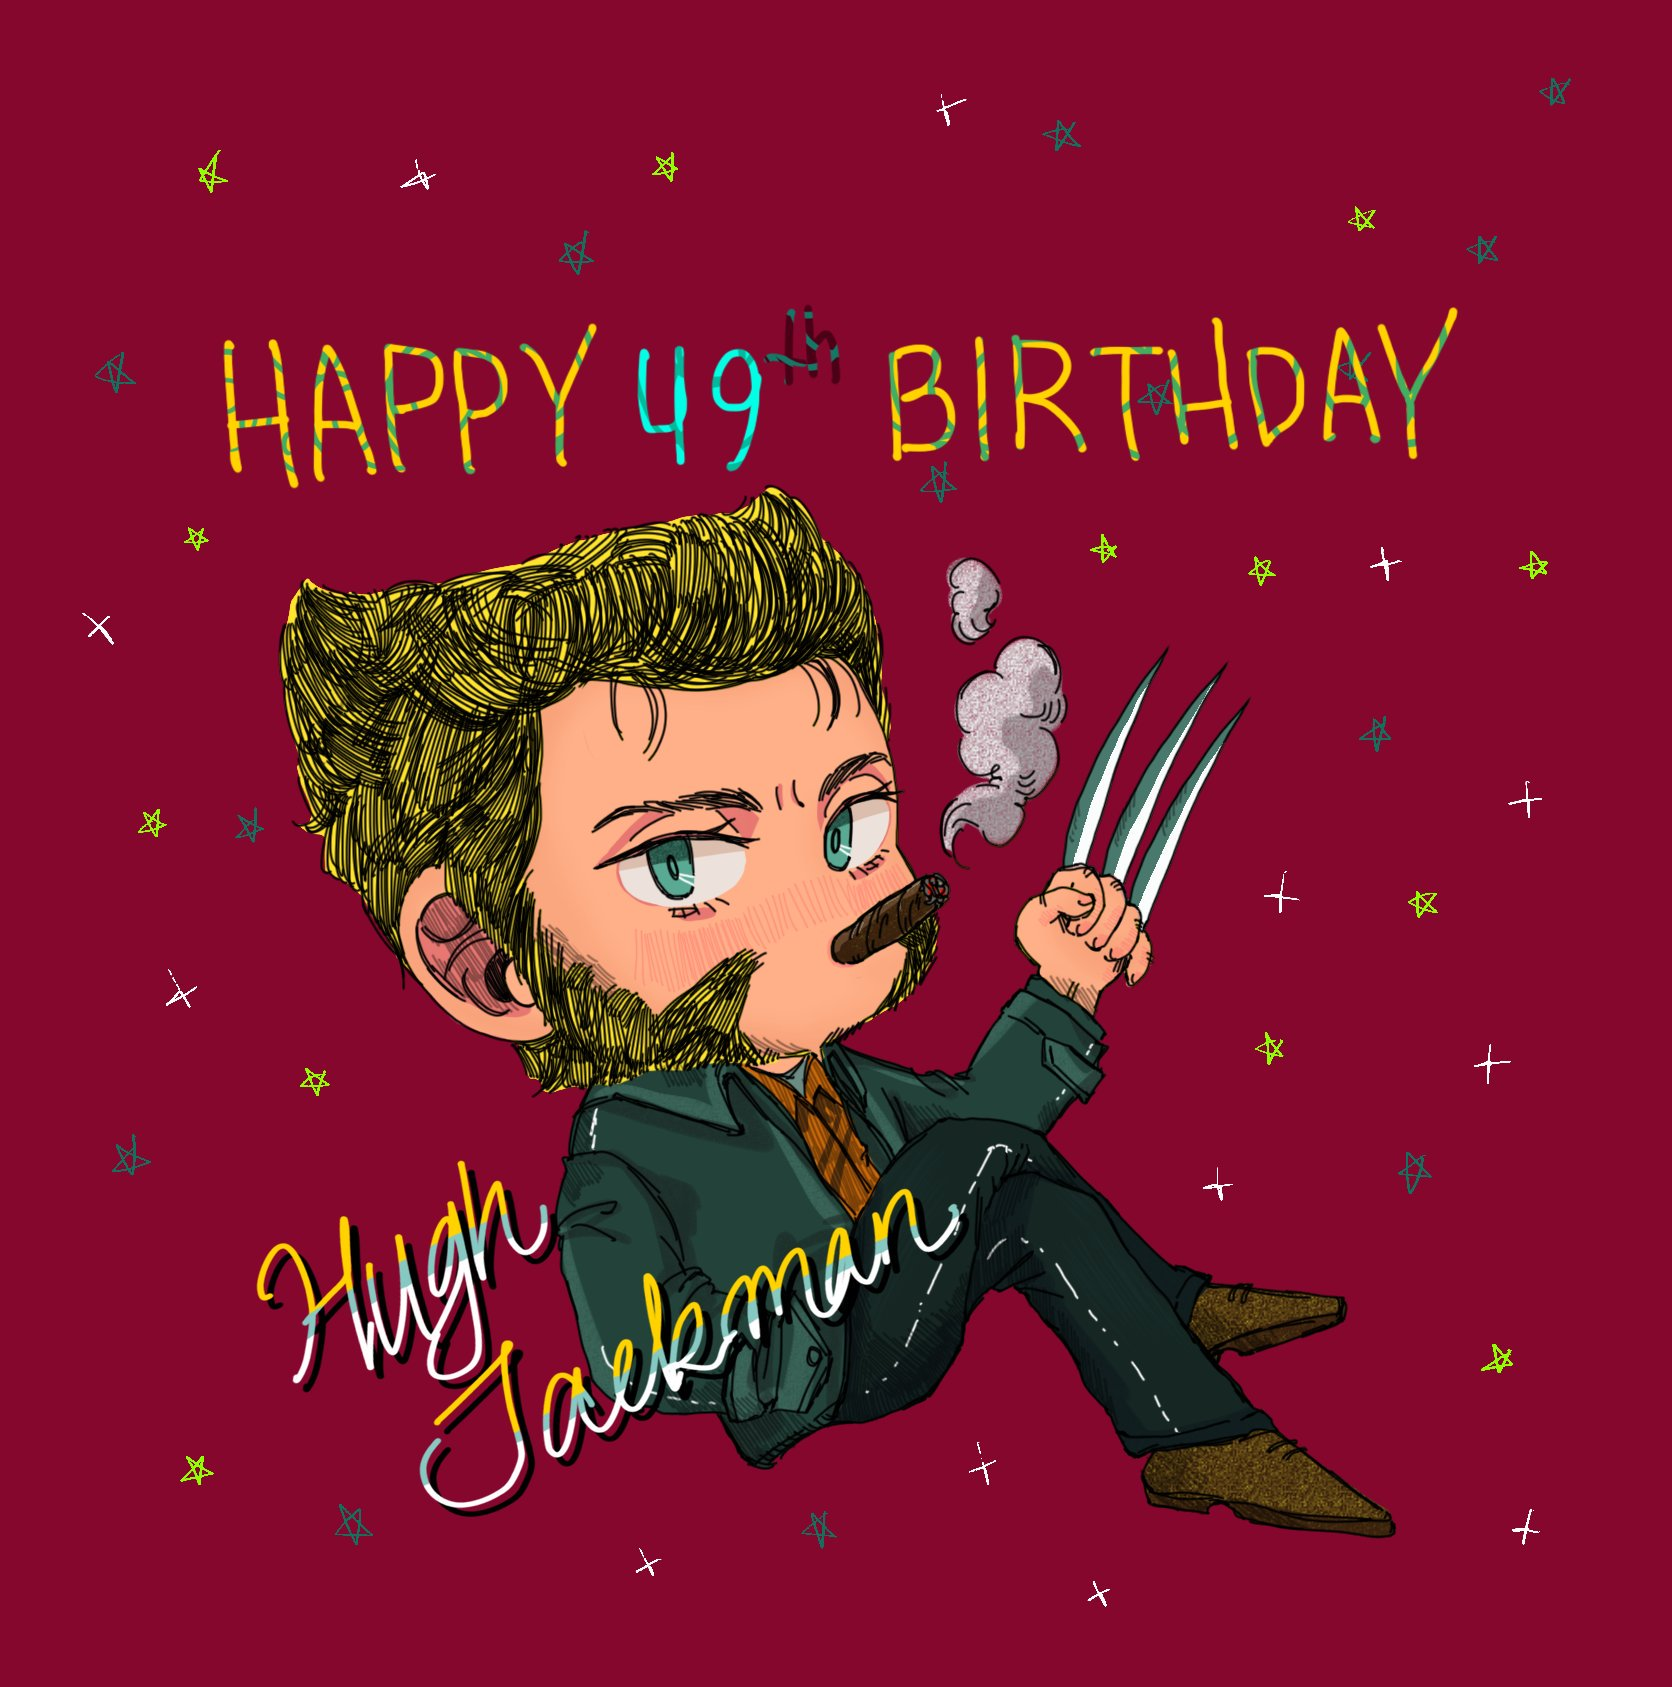 OCT 12TH        (?)            ! HAPPY BIRTHDAY HUGH JACKMAN my one and only Wolverine